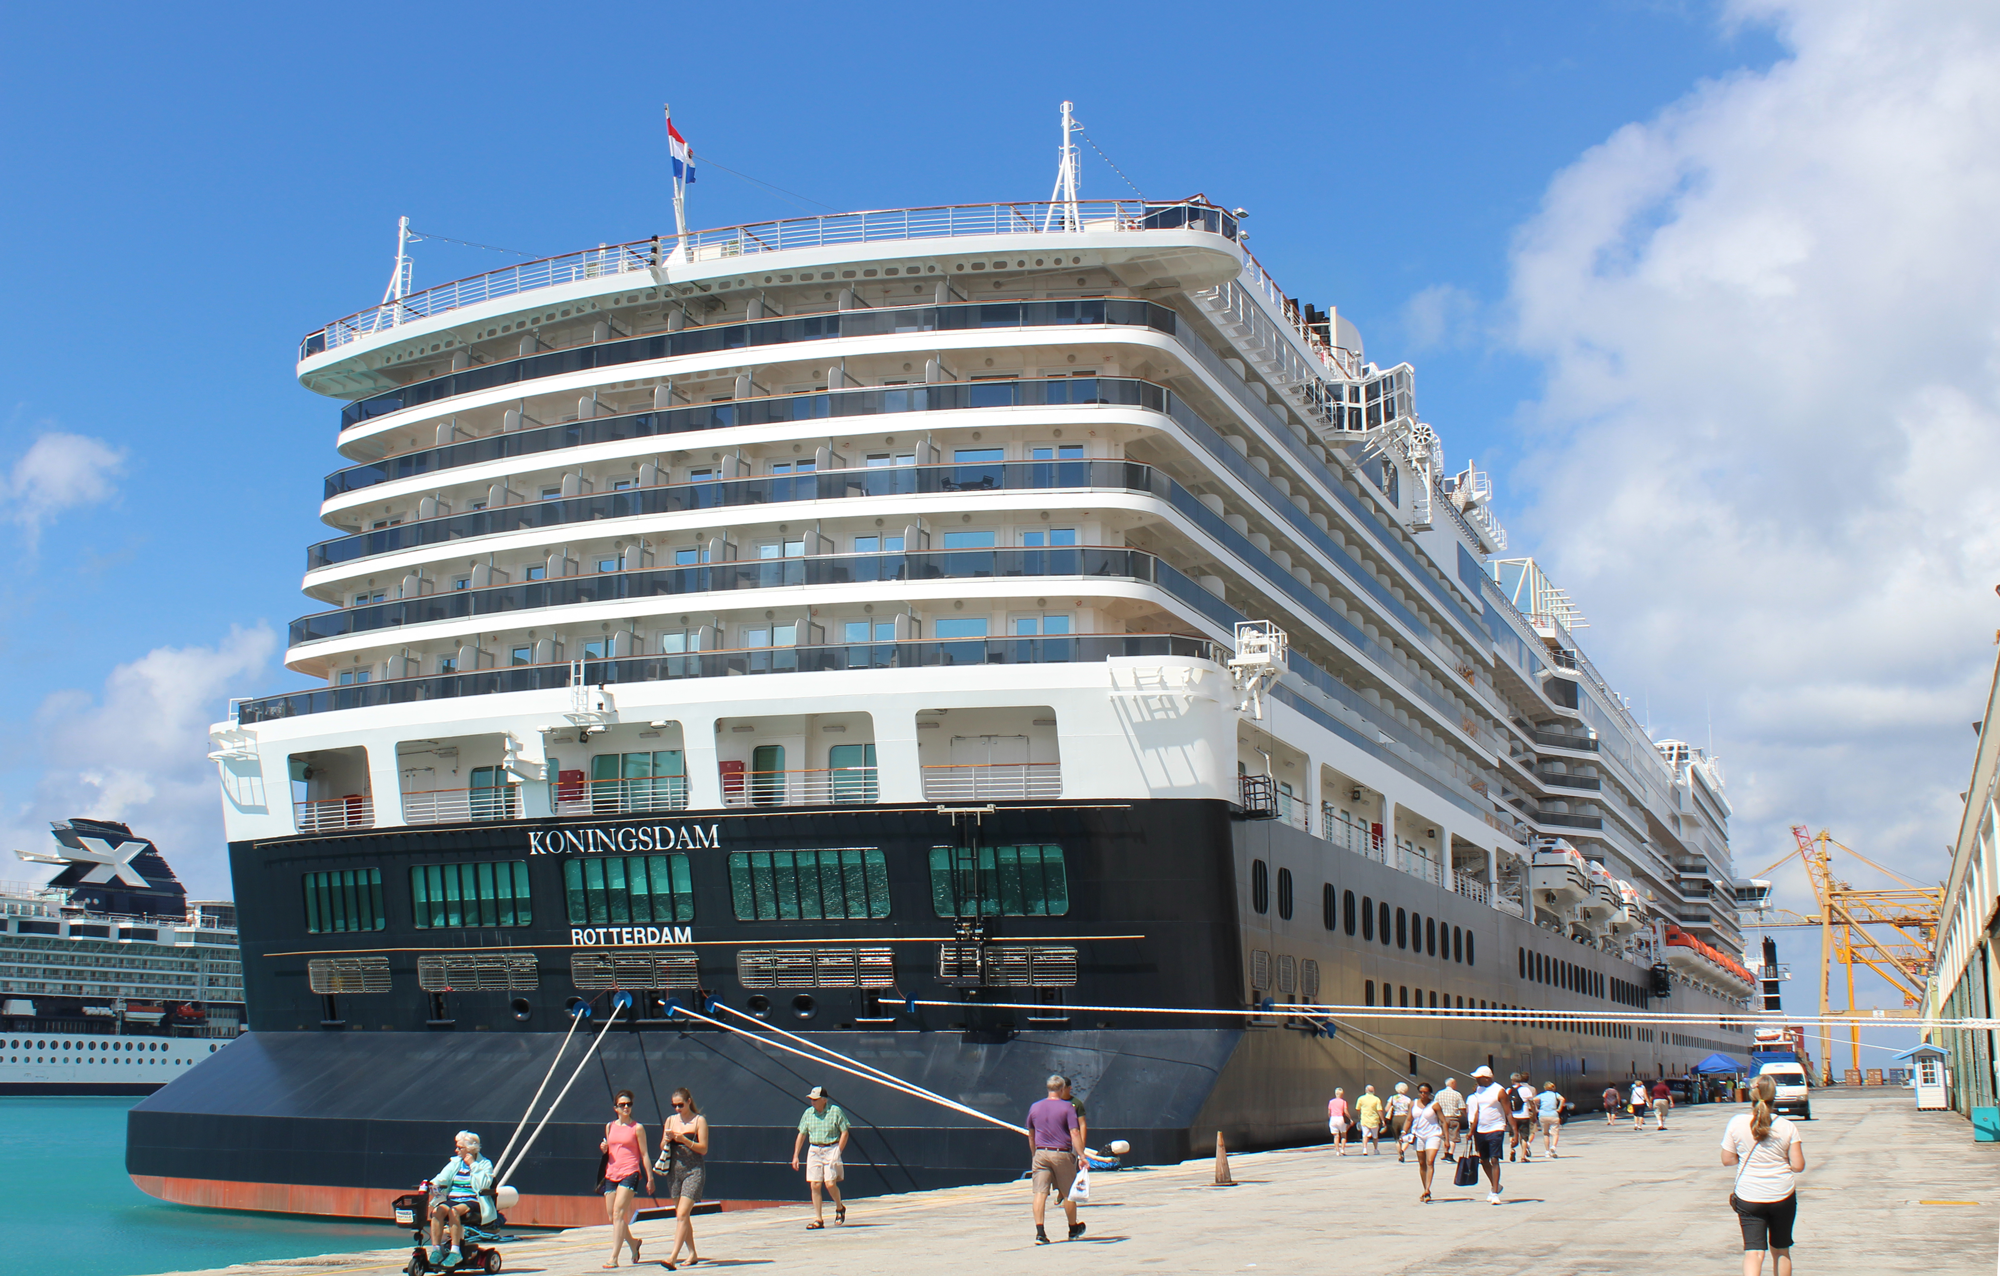 MS Koningsdam in its first ever visit to Barbados, 2016